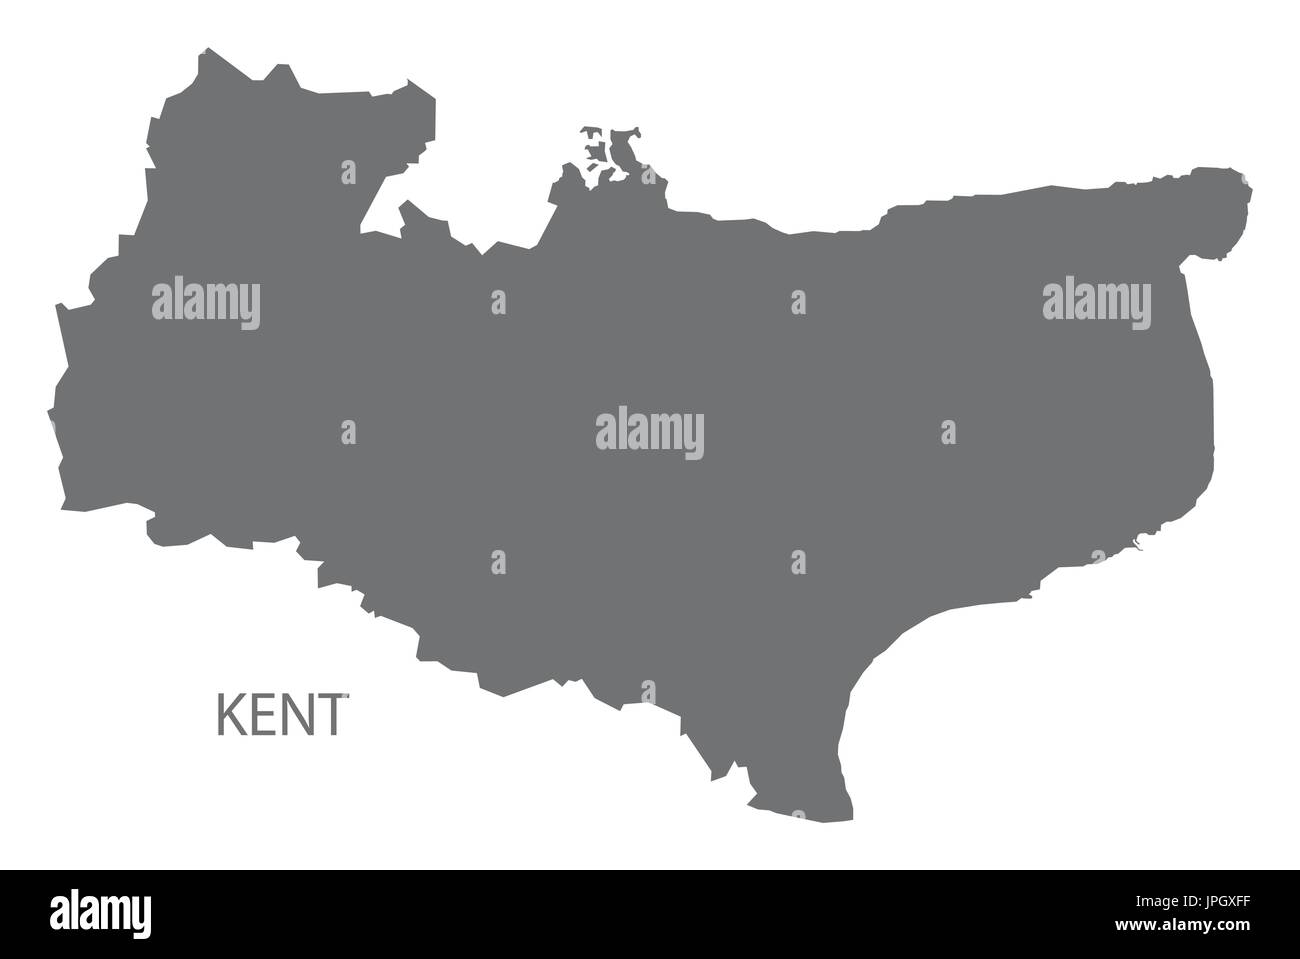 Kent Map Of England.Kent County Map England Uk Grey Illustration Silhouette Shape Stock